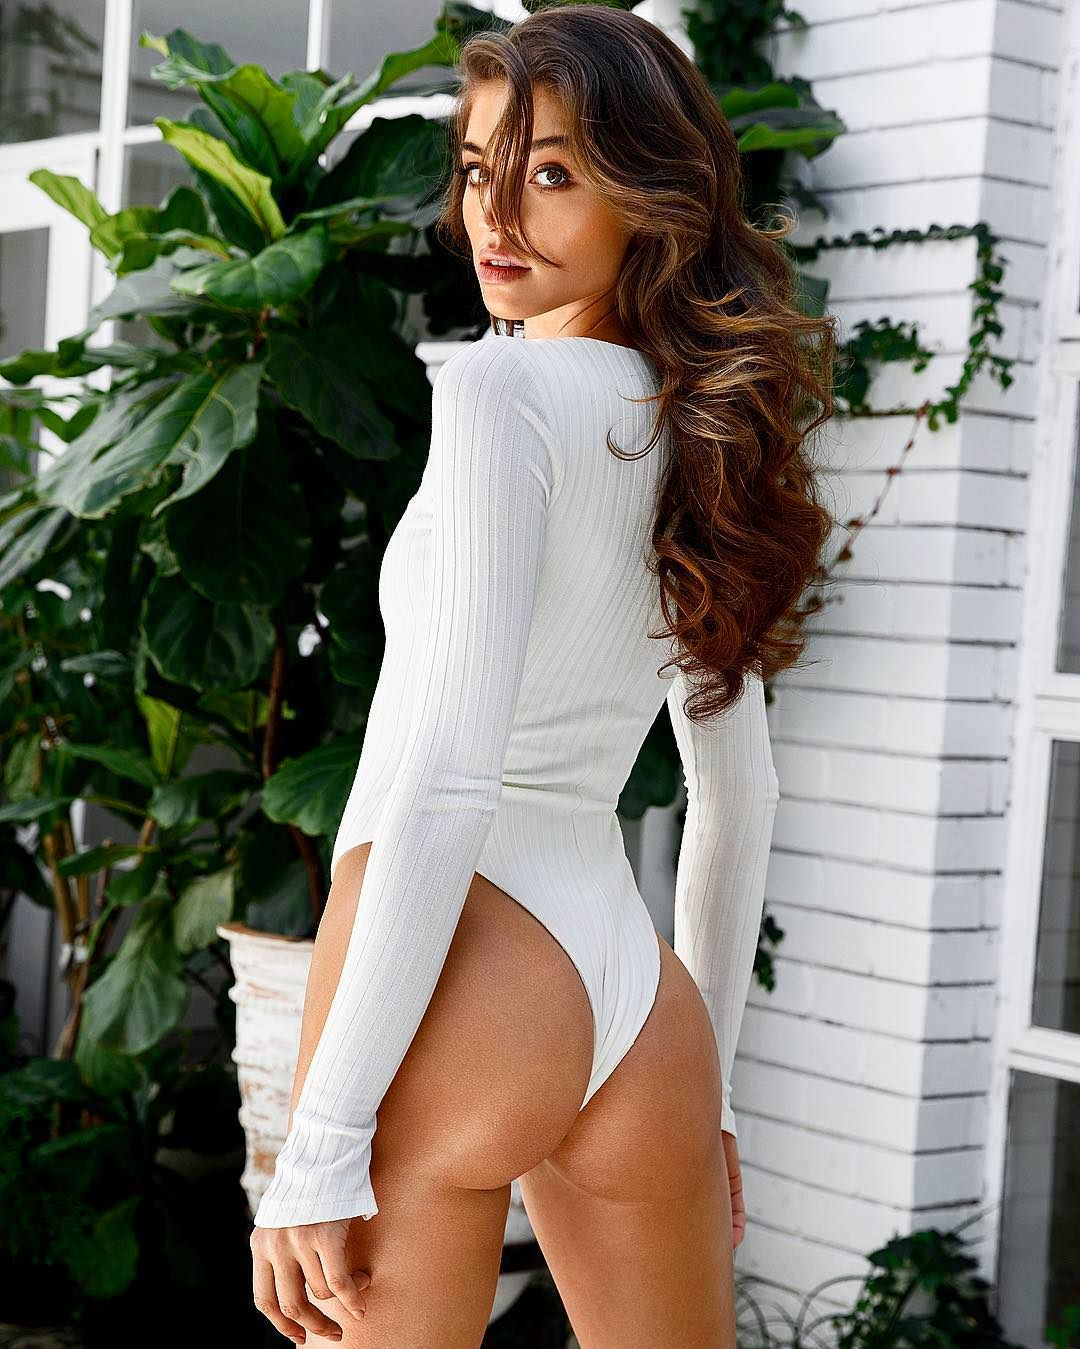 Daniela Lopez Osorio COL Daniela Lopez Osorio COL new pictures